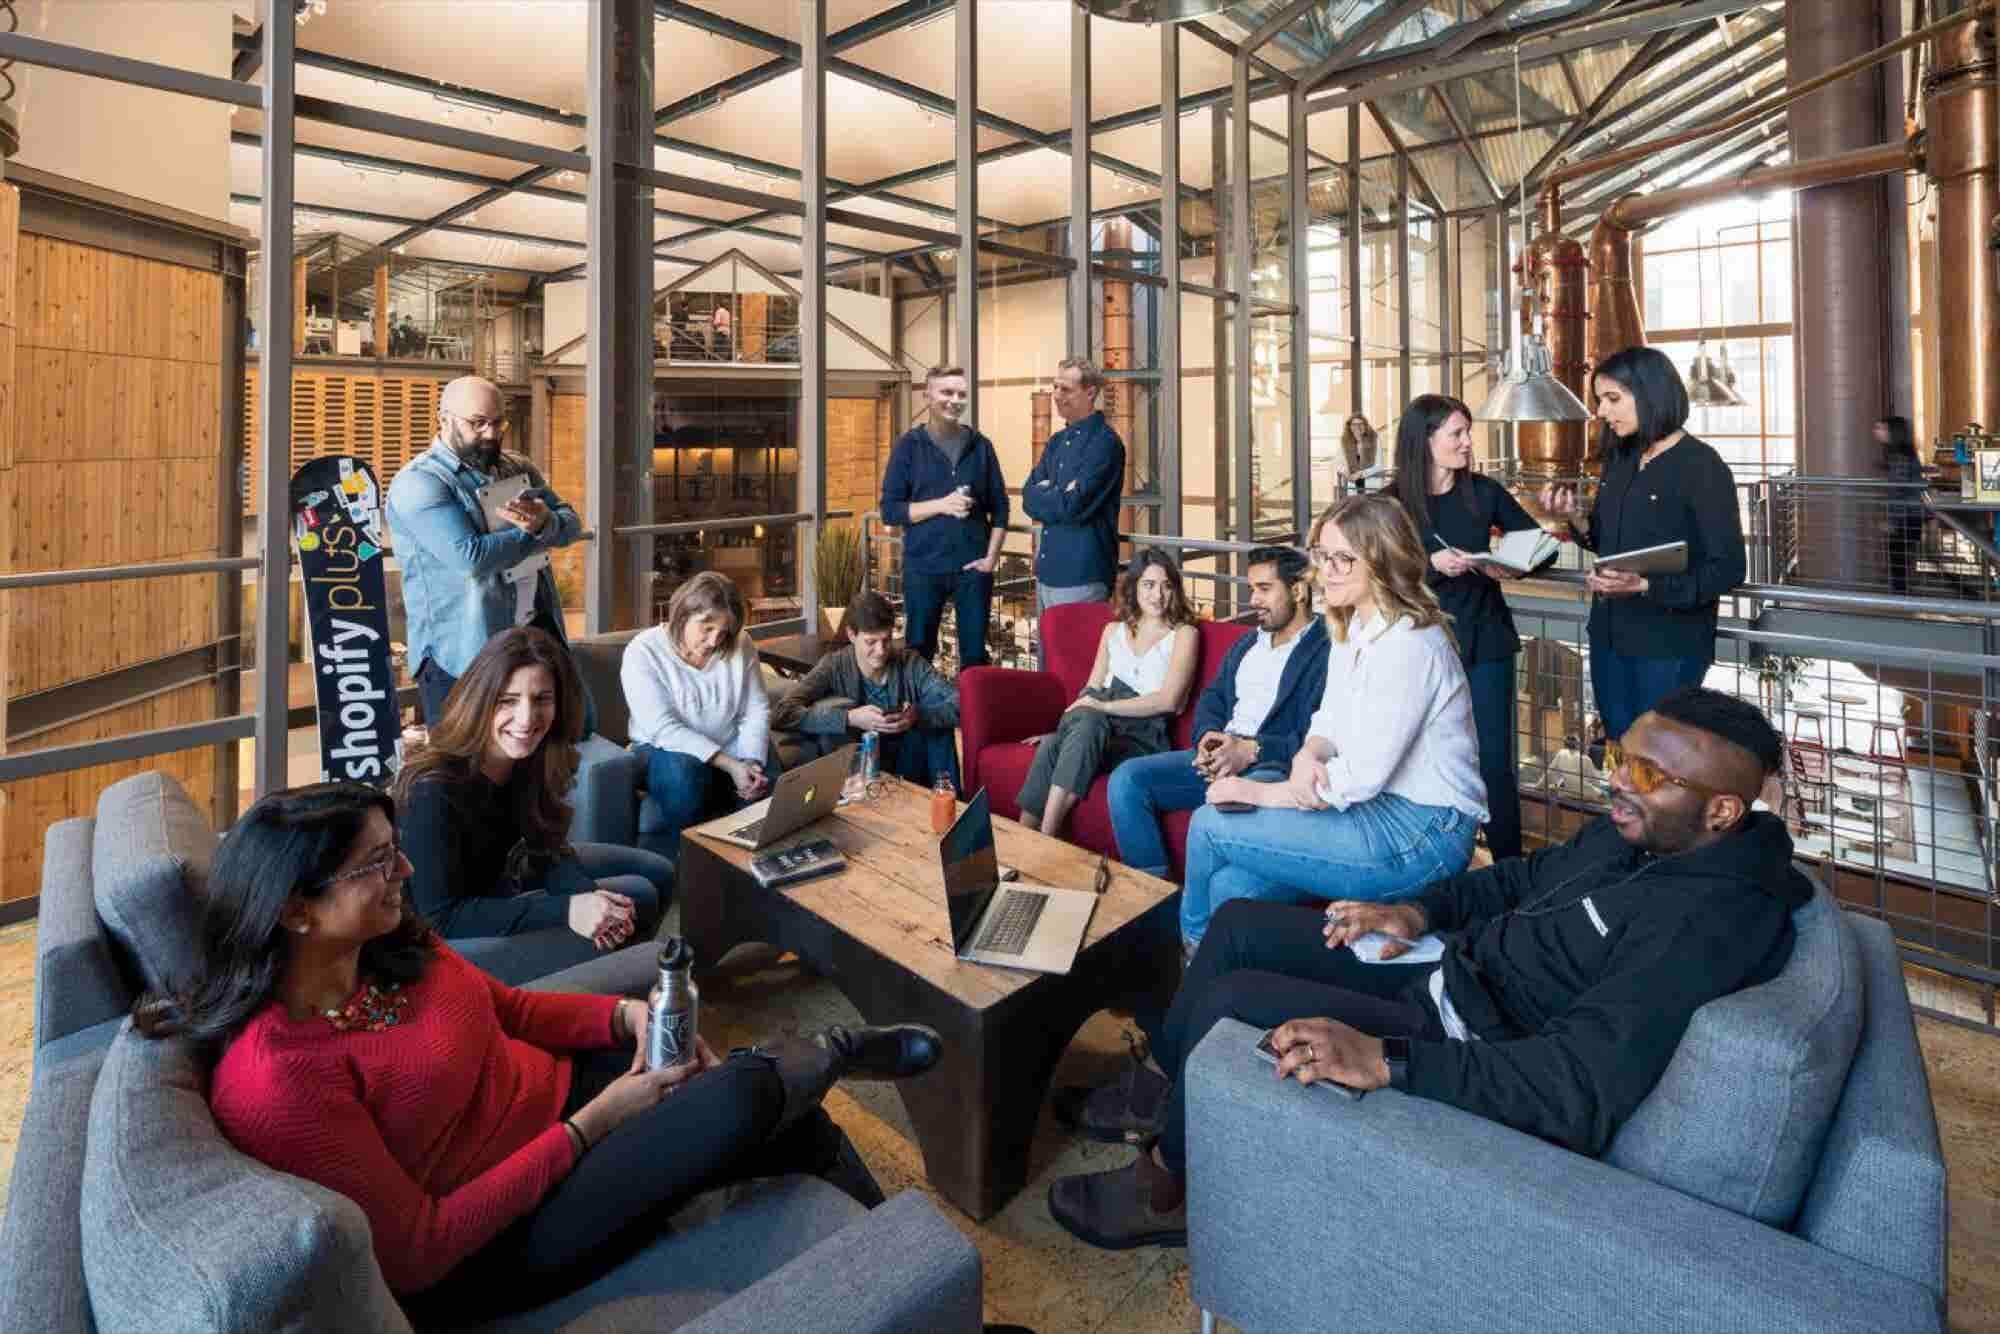 Inside Shopify's Intoxicating Distillery-Turned-Office Space